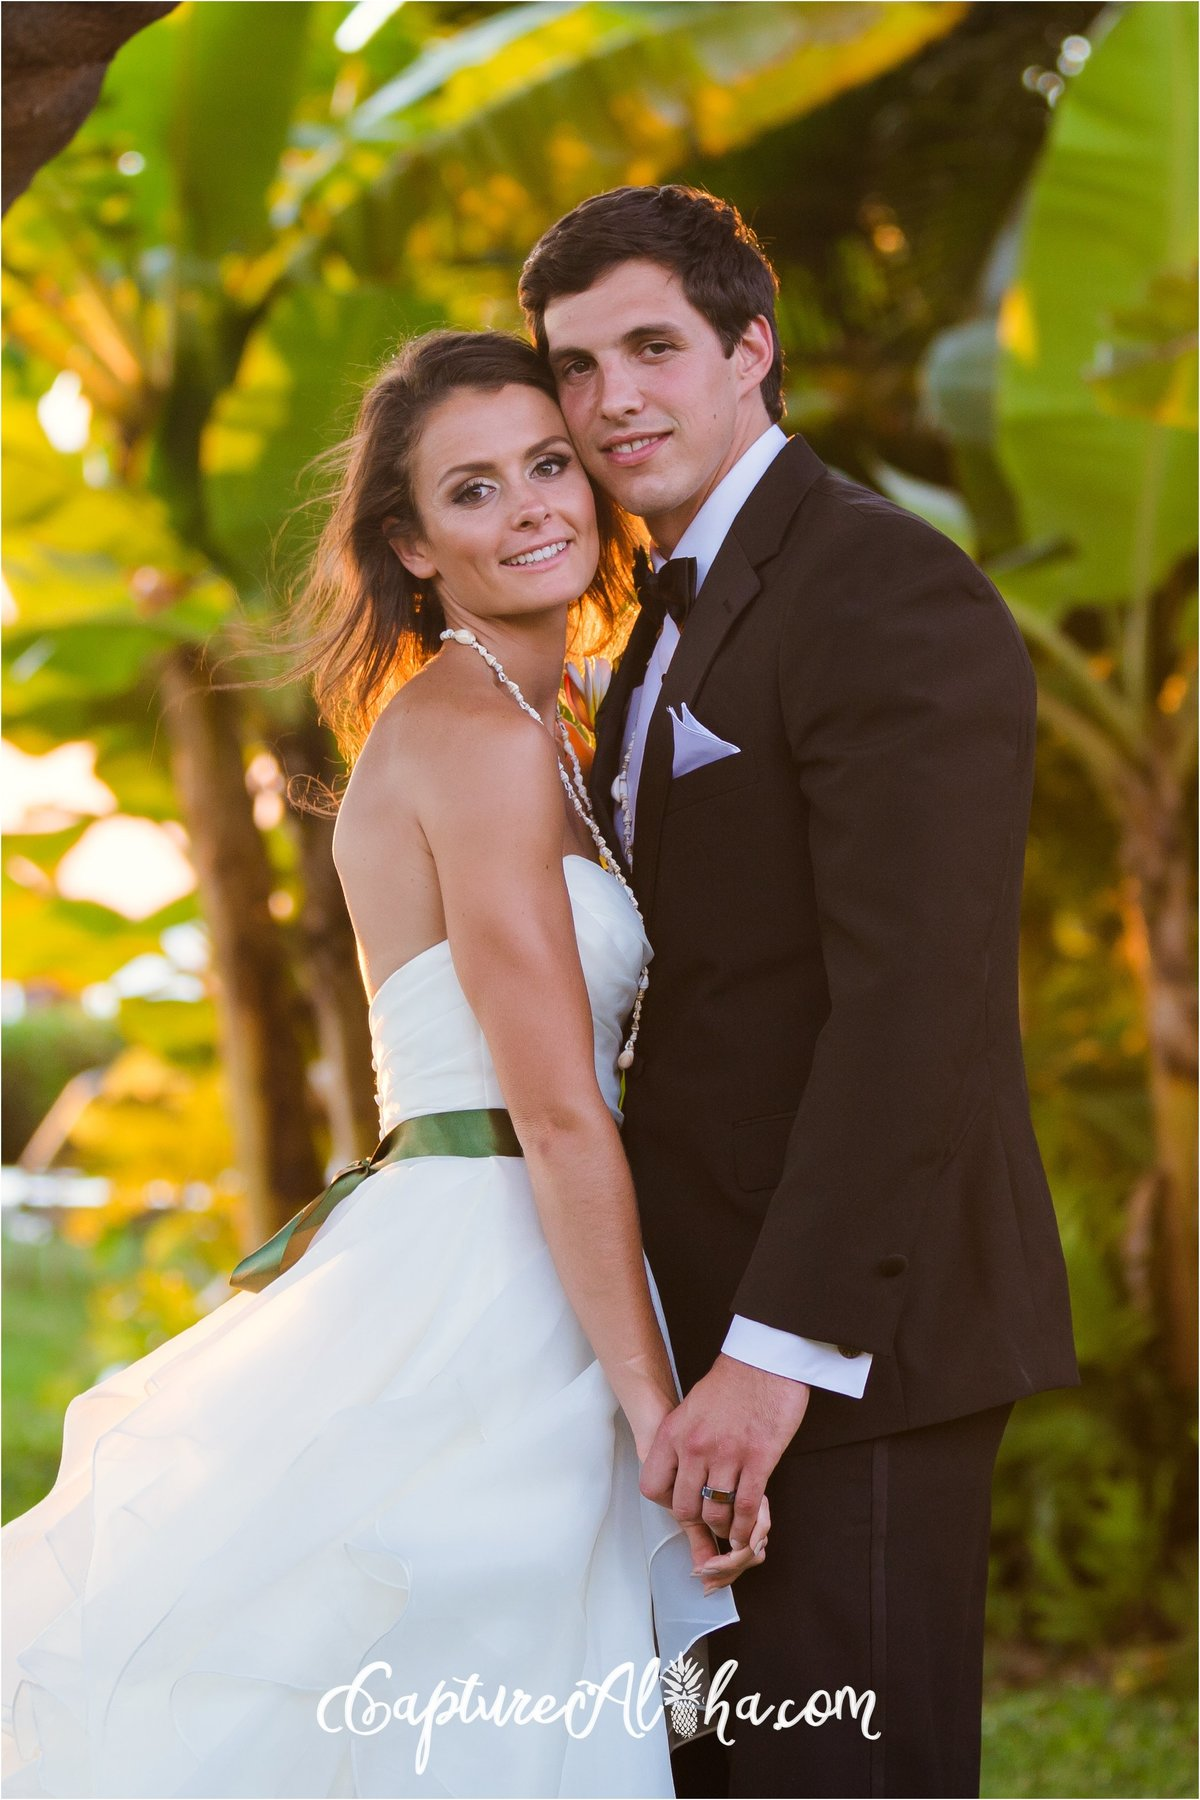 Maui Wedding Photographers - Bride And Groom newly married